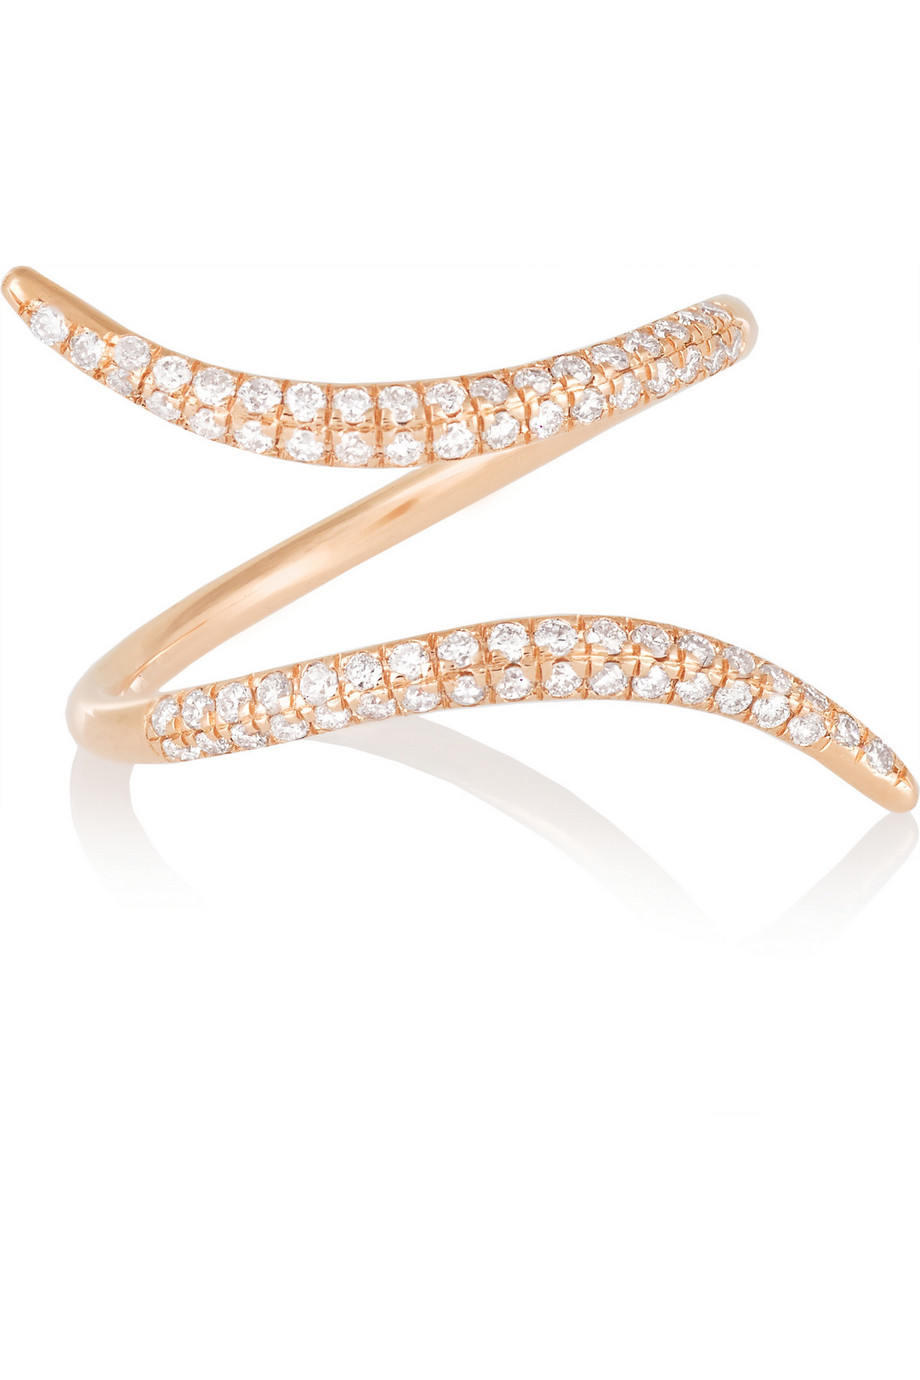 Diane Kordas 18-Karat Rose Gold Diamond Ring, Women's, Size: 54